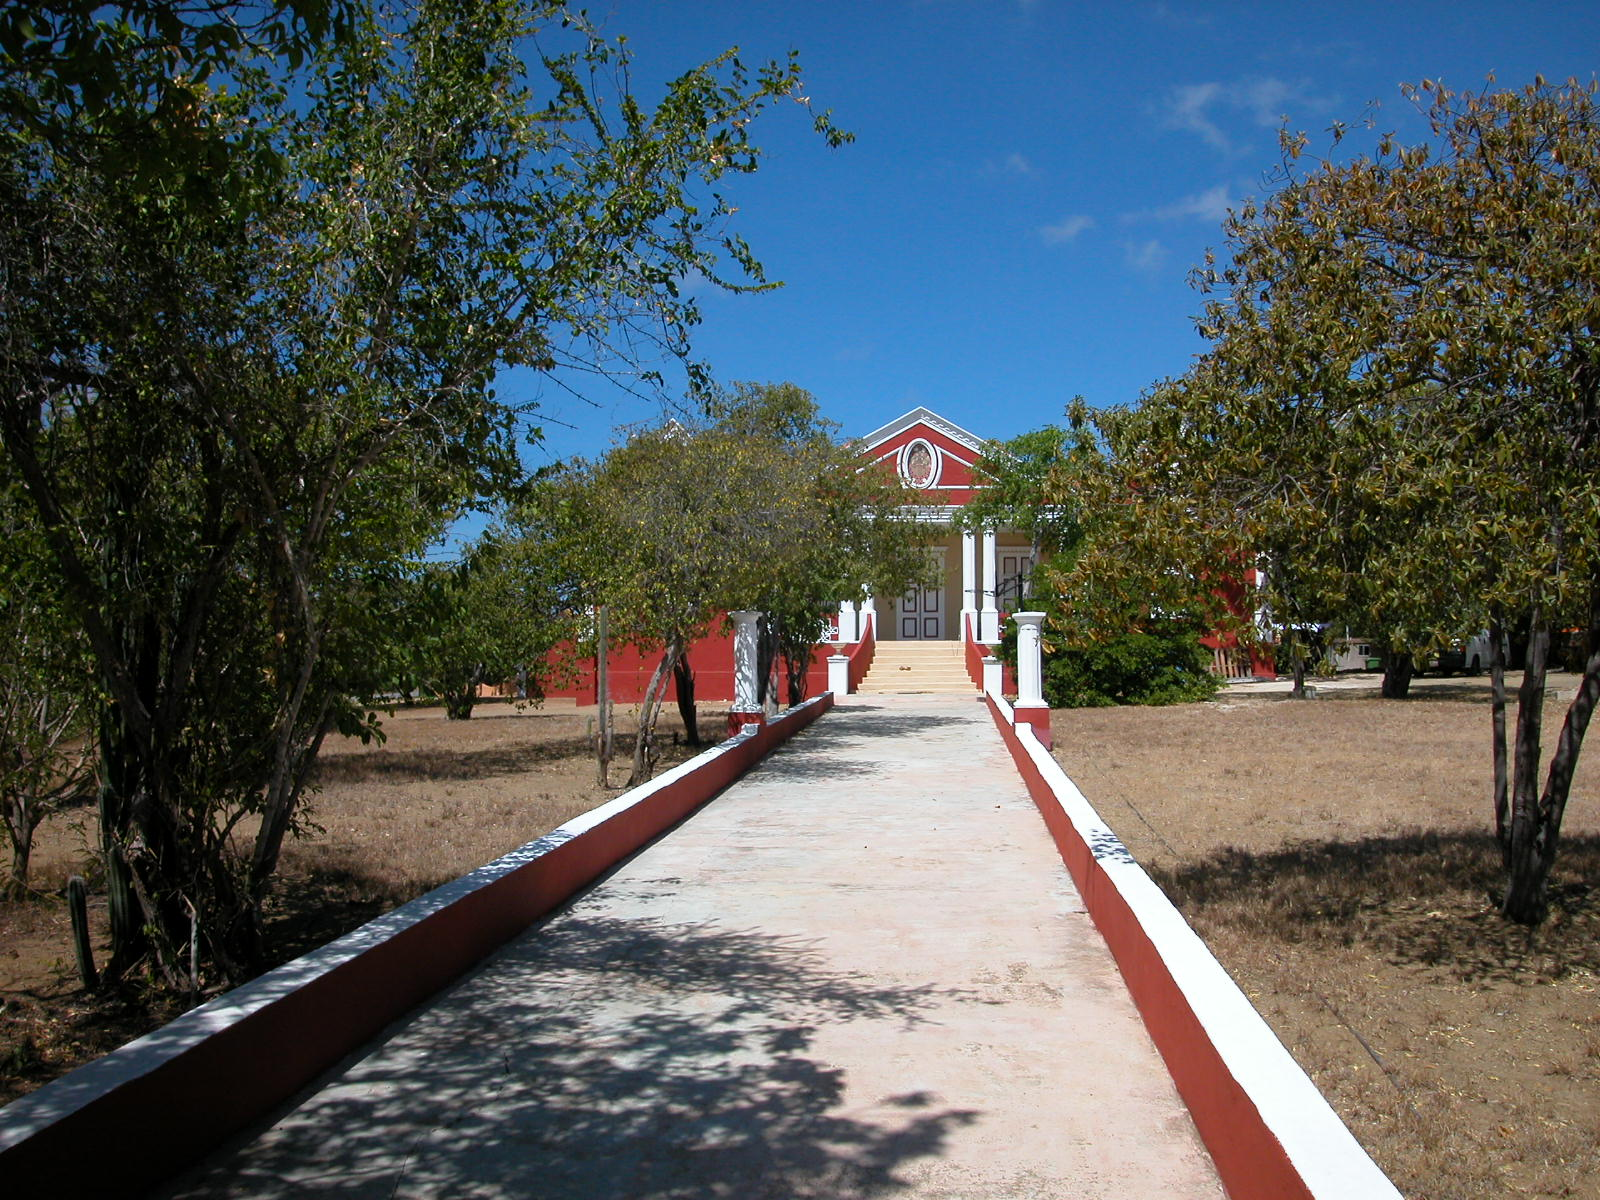 colony colonial pantation path long straight red decorative country house mansion